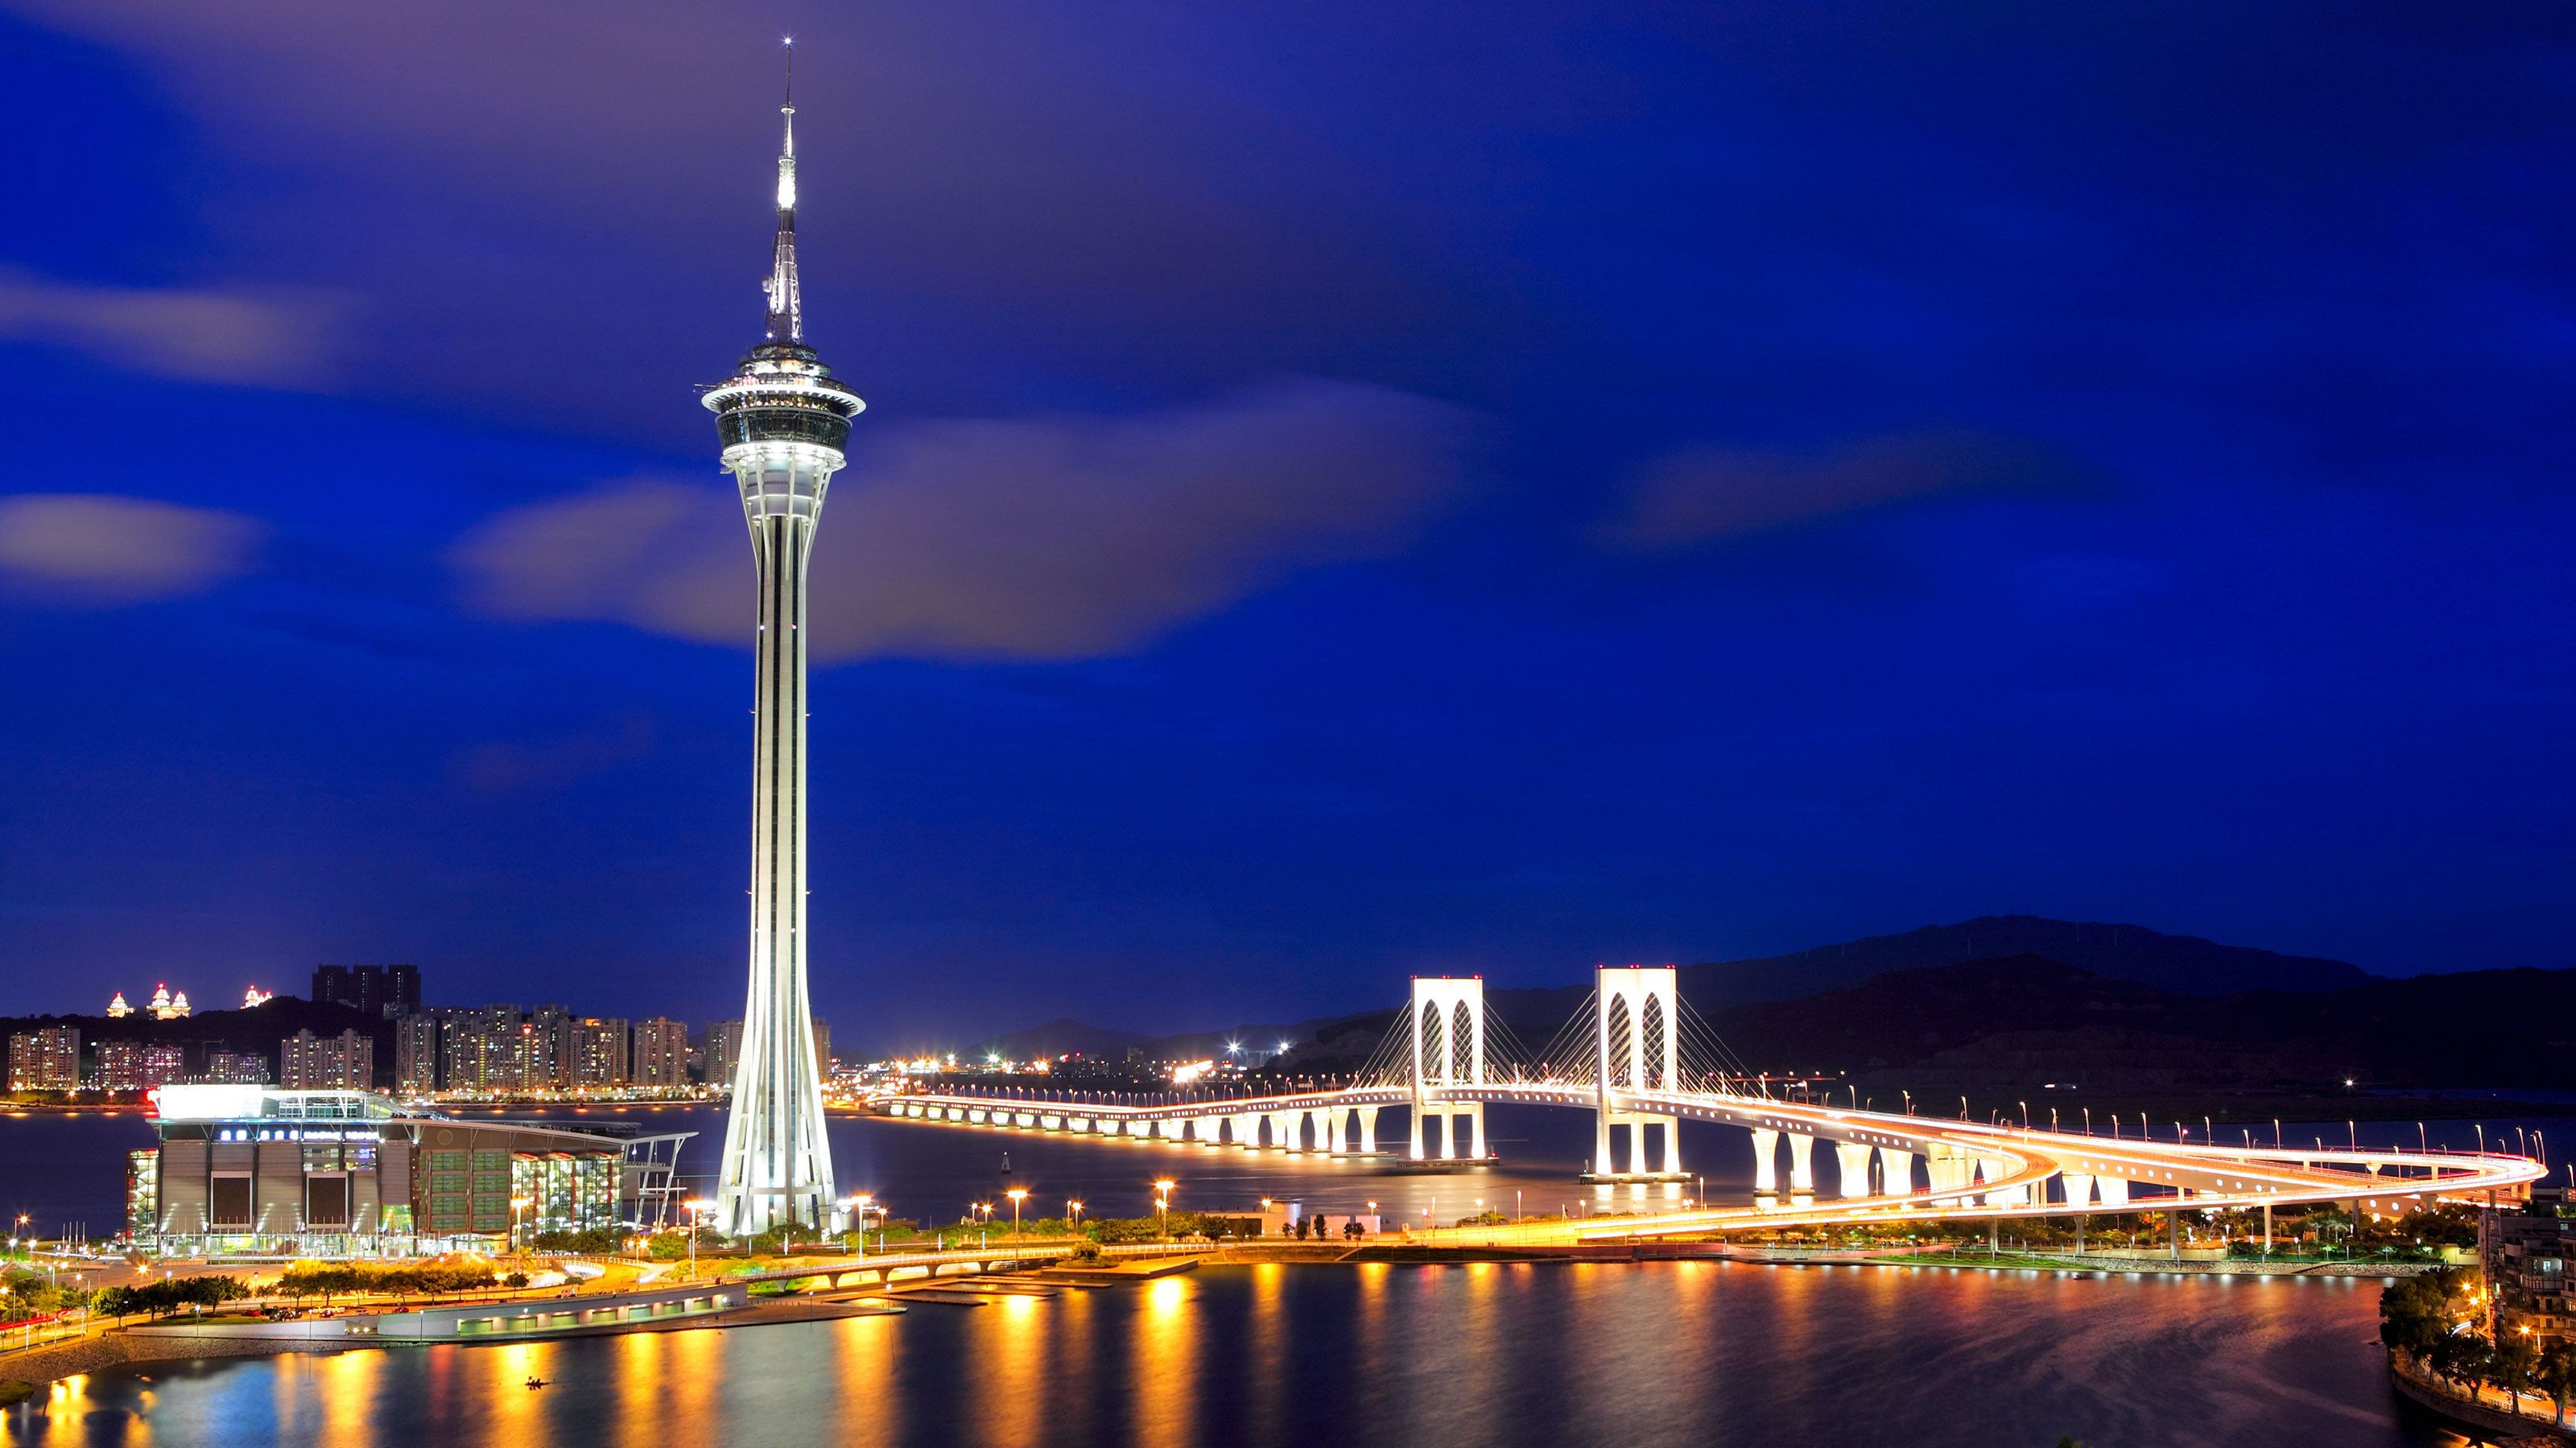 The Macau tower and city at night